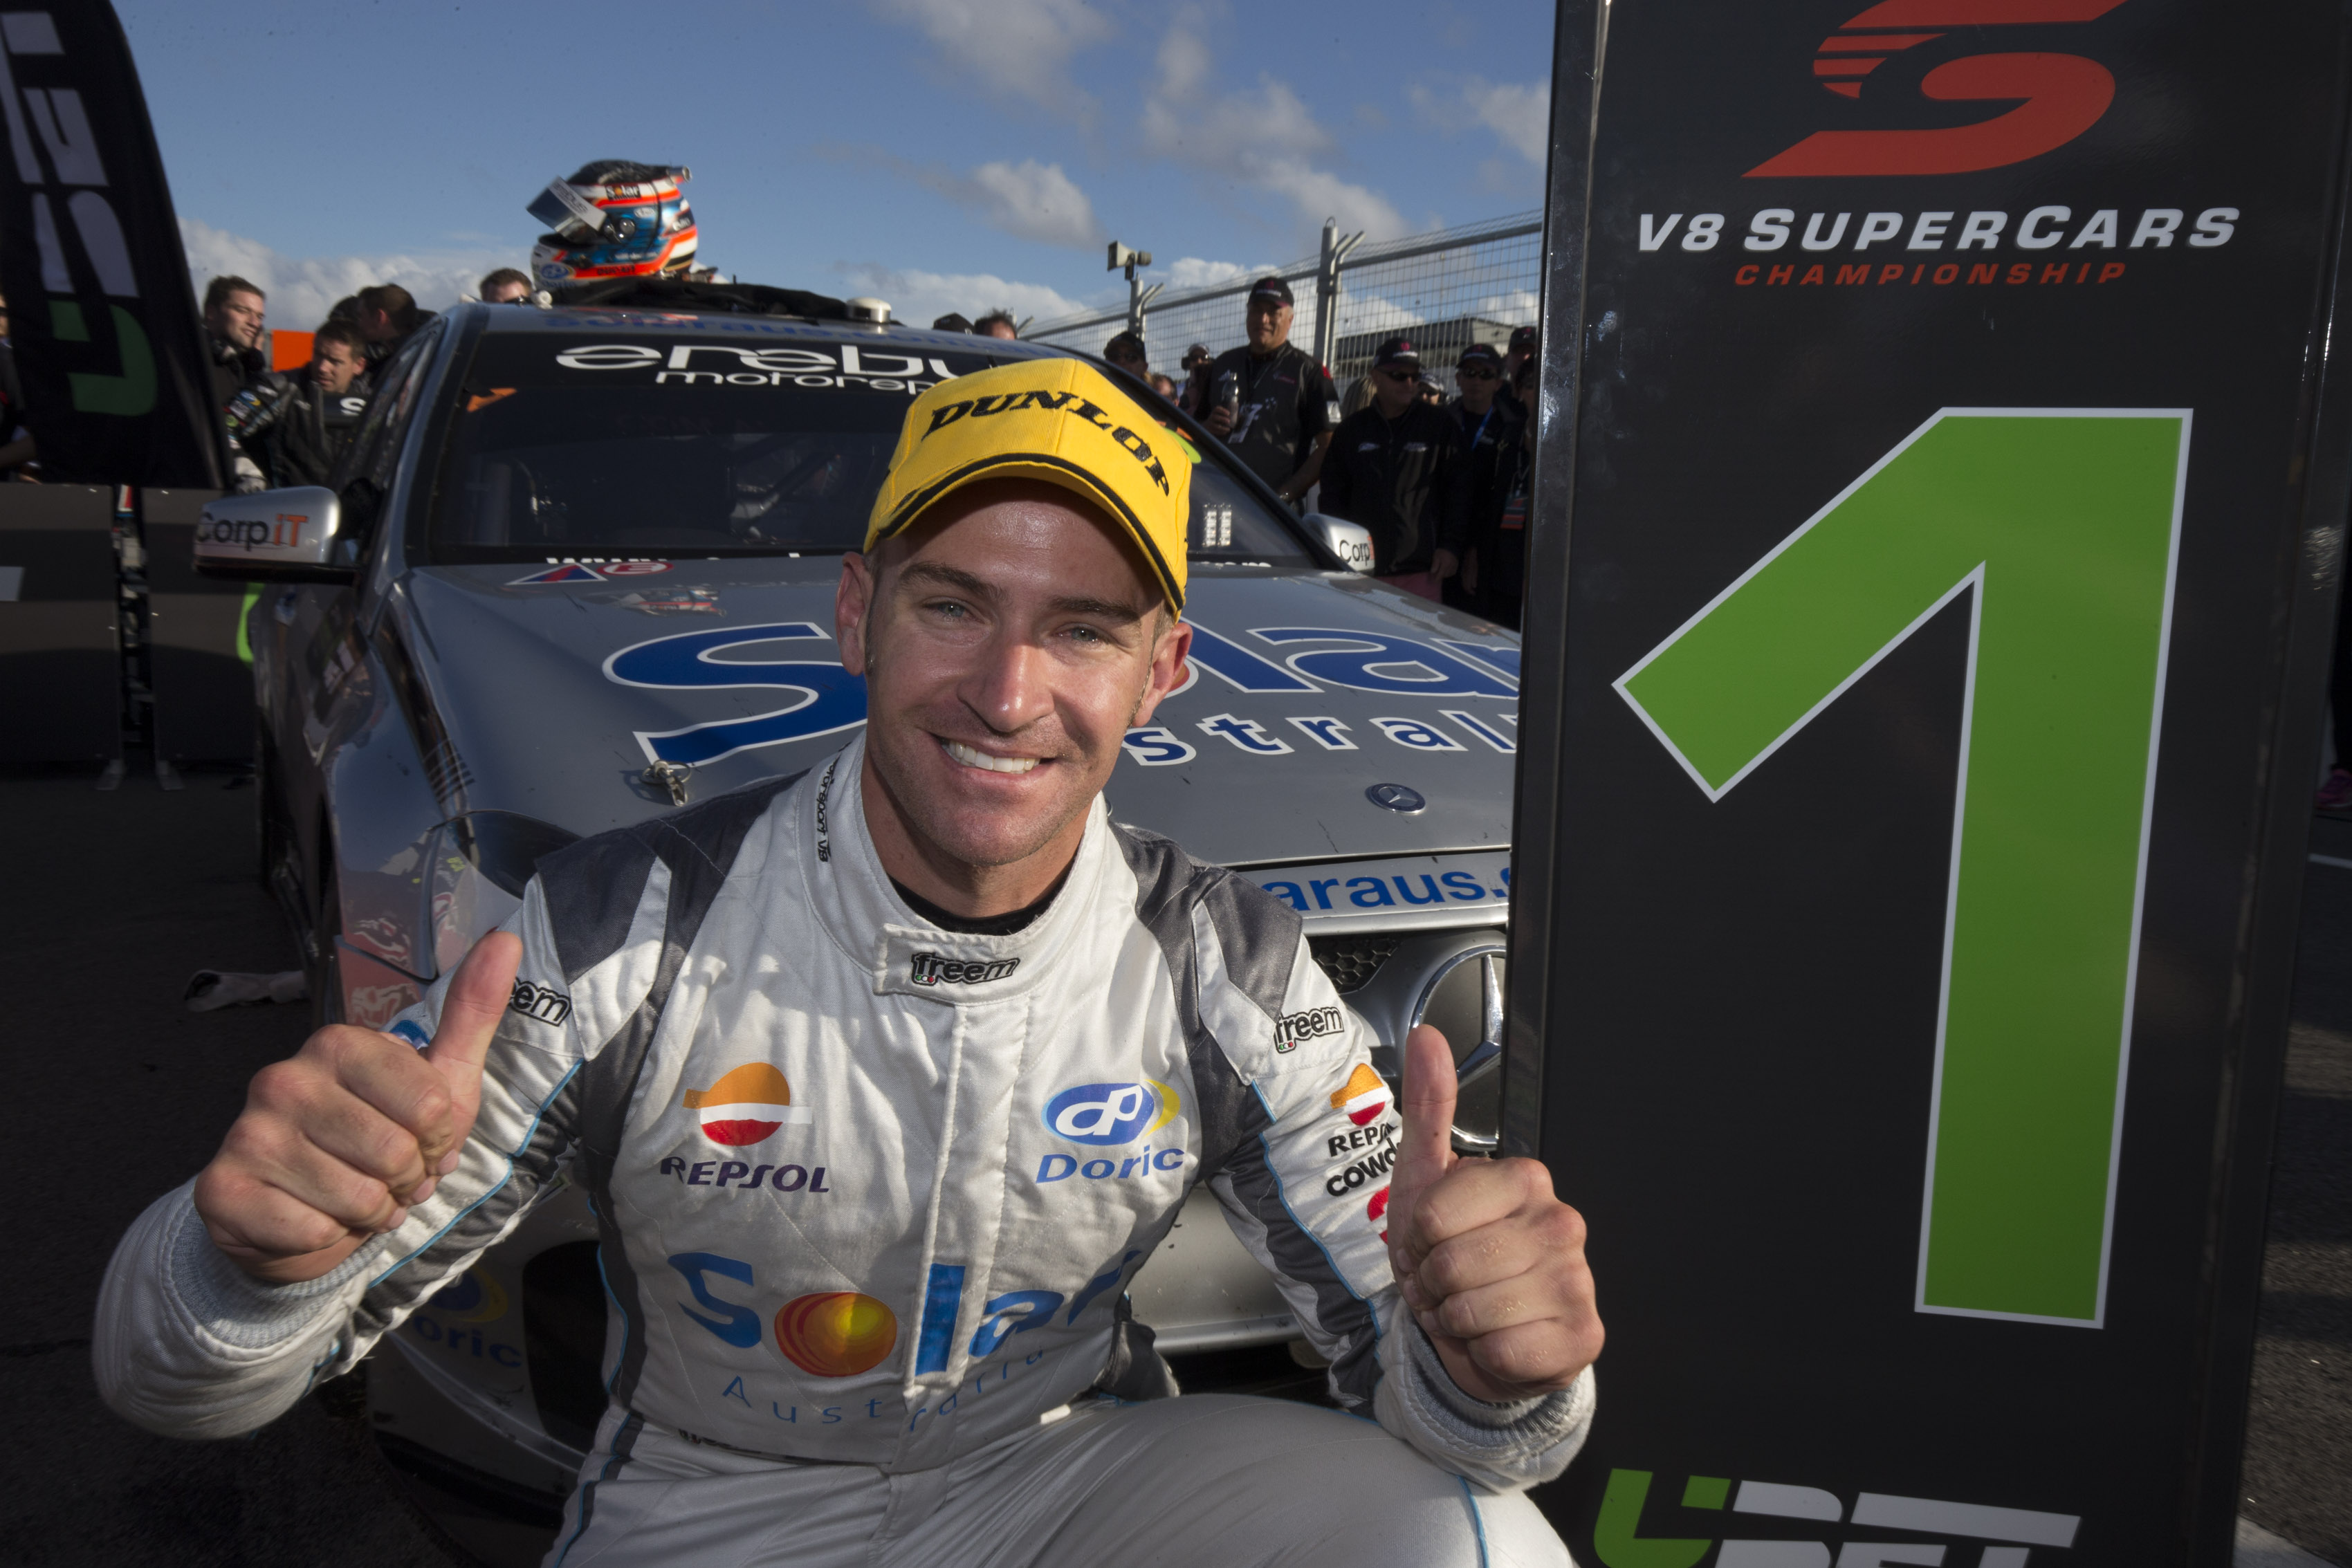 Inside Supercars – Show 38 – Perth Review